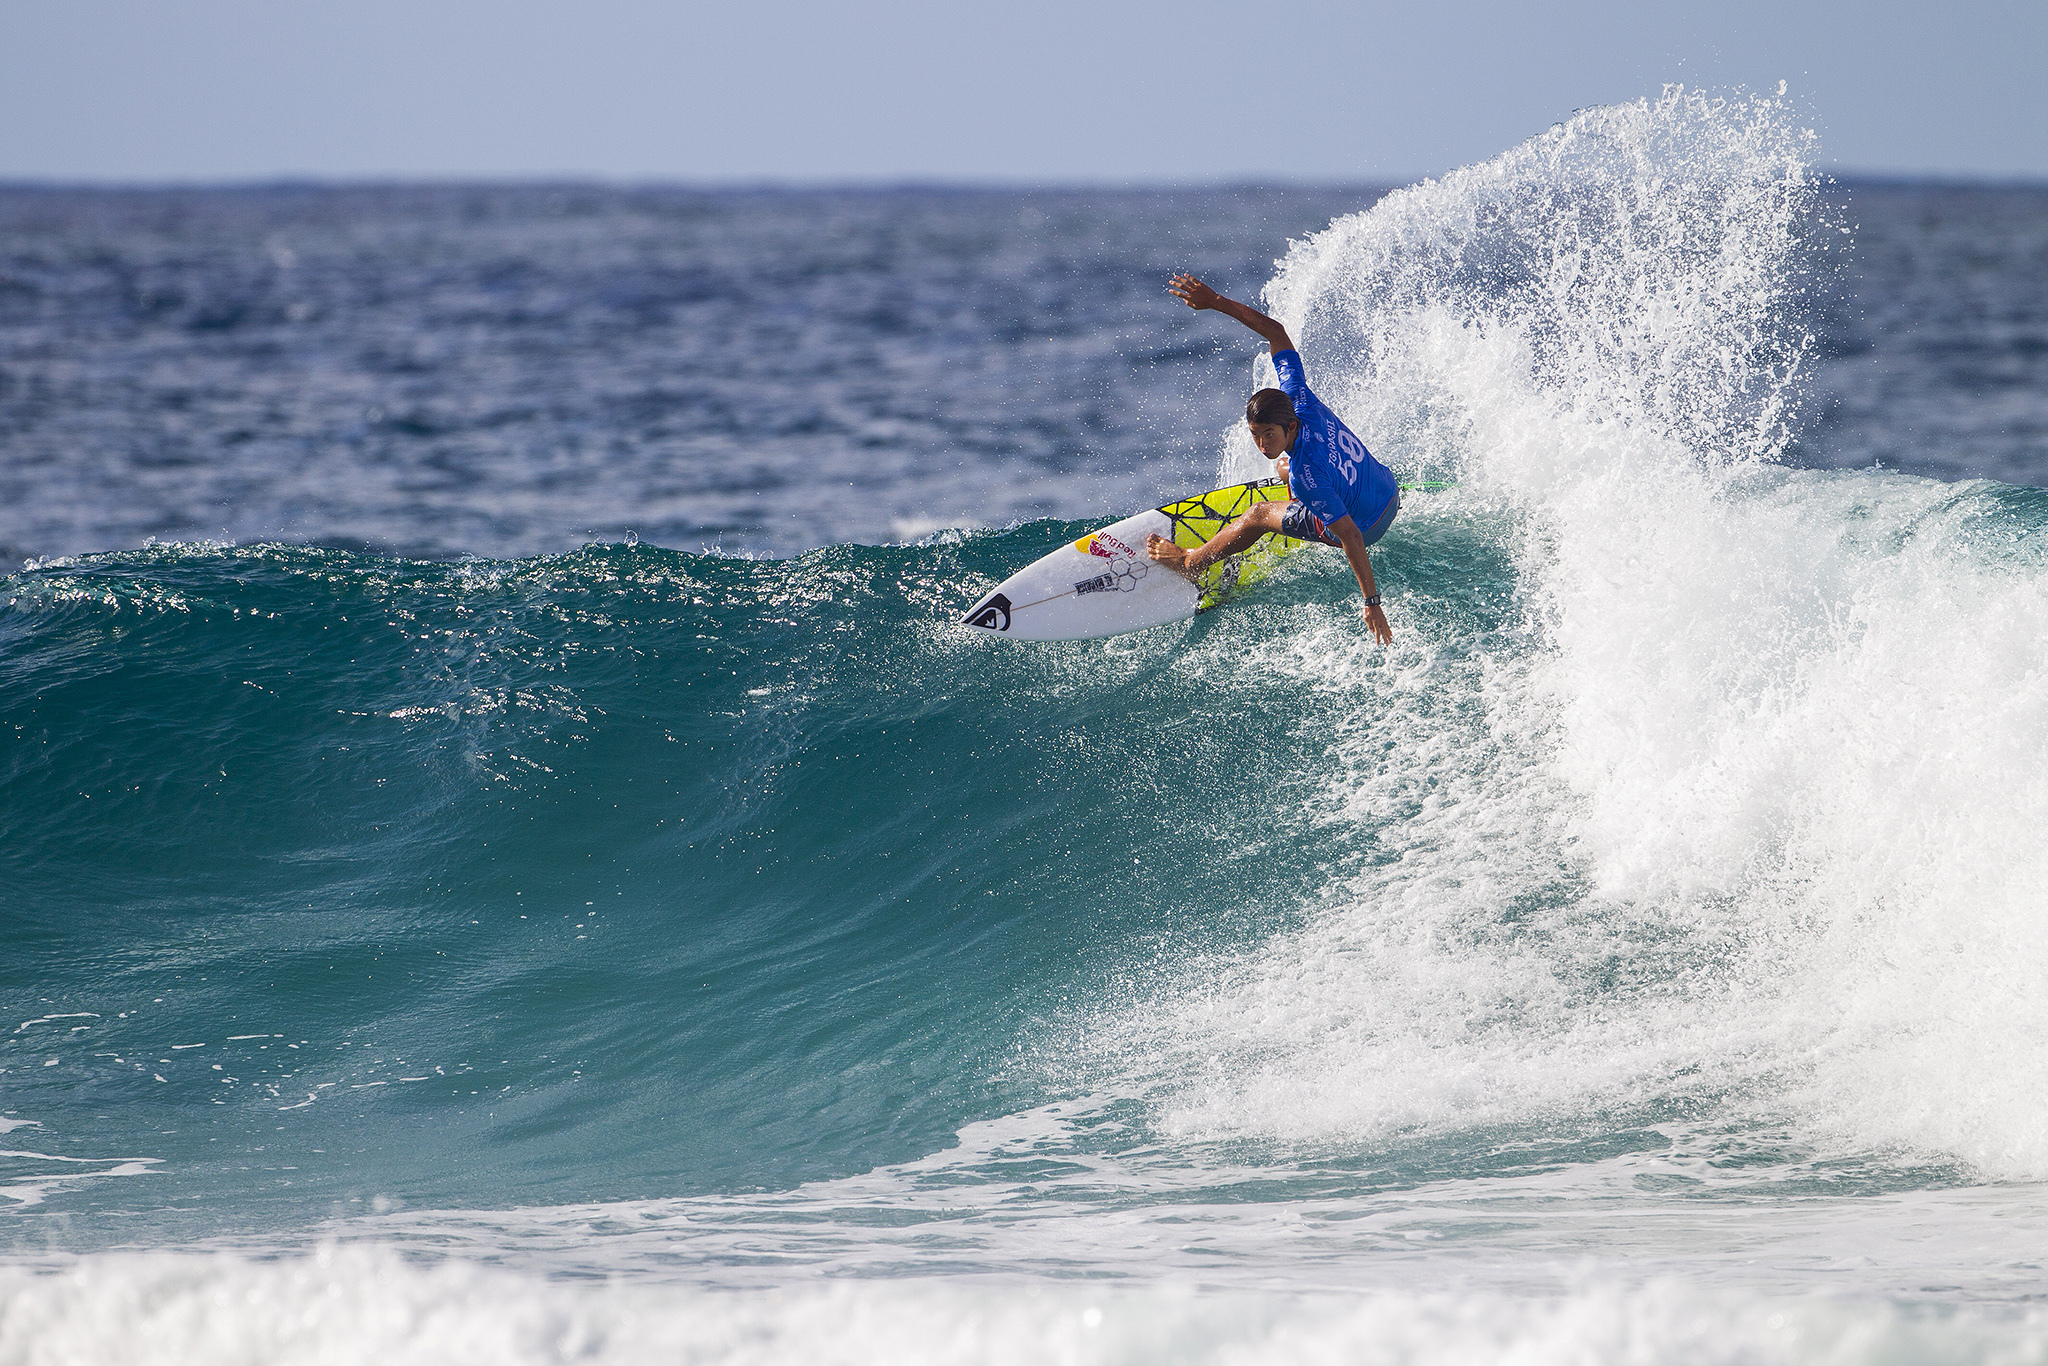 Tour rookie Kanoa Igarashi winning of the USA (pictured) winning his Round 3 heat at the Quiksilver Pro Gold Coast on Monday March 14, 2016. PHOTO CREDIT: ©WSL/ SKINNER SOCIAL MEDIA TAG: @wsl The attached image is a hand-out image from the World Surf League and is royalty free for editorial use only, no commercial rights granted. The copyright is owned by World Surf League. Sale or license of the images is prohibited. ALL RIGHTS RESERVED.